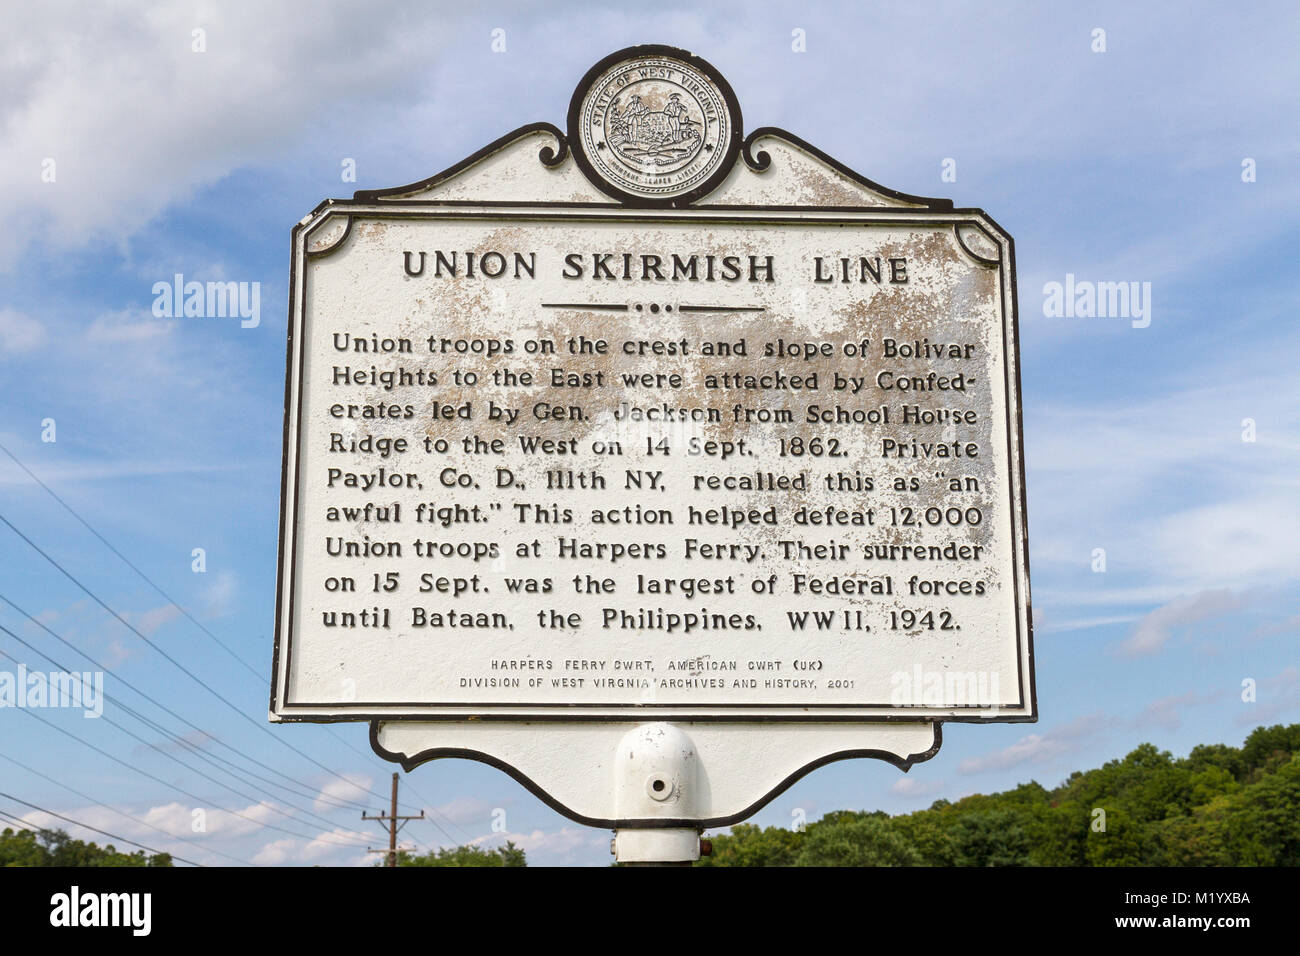 Union skirmish line marker part of the 1862 Battle of Harpers Ferry, West Virginia, United States. - Stock Image